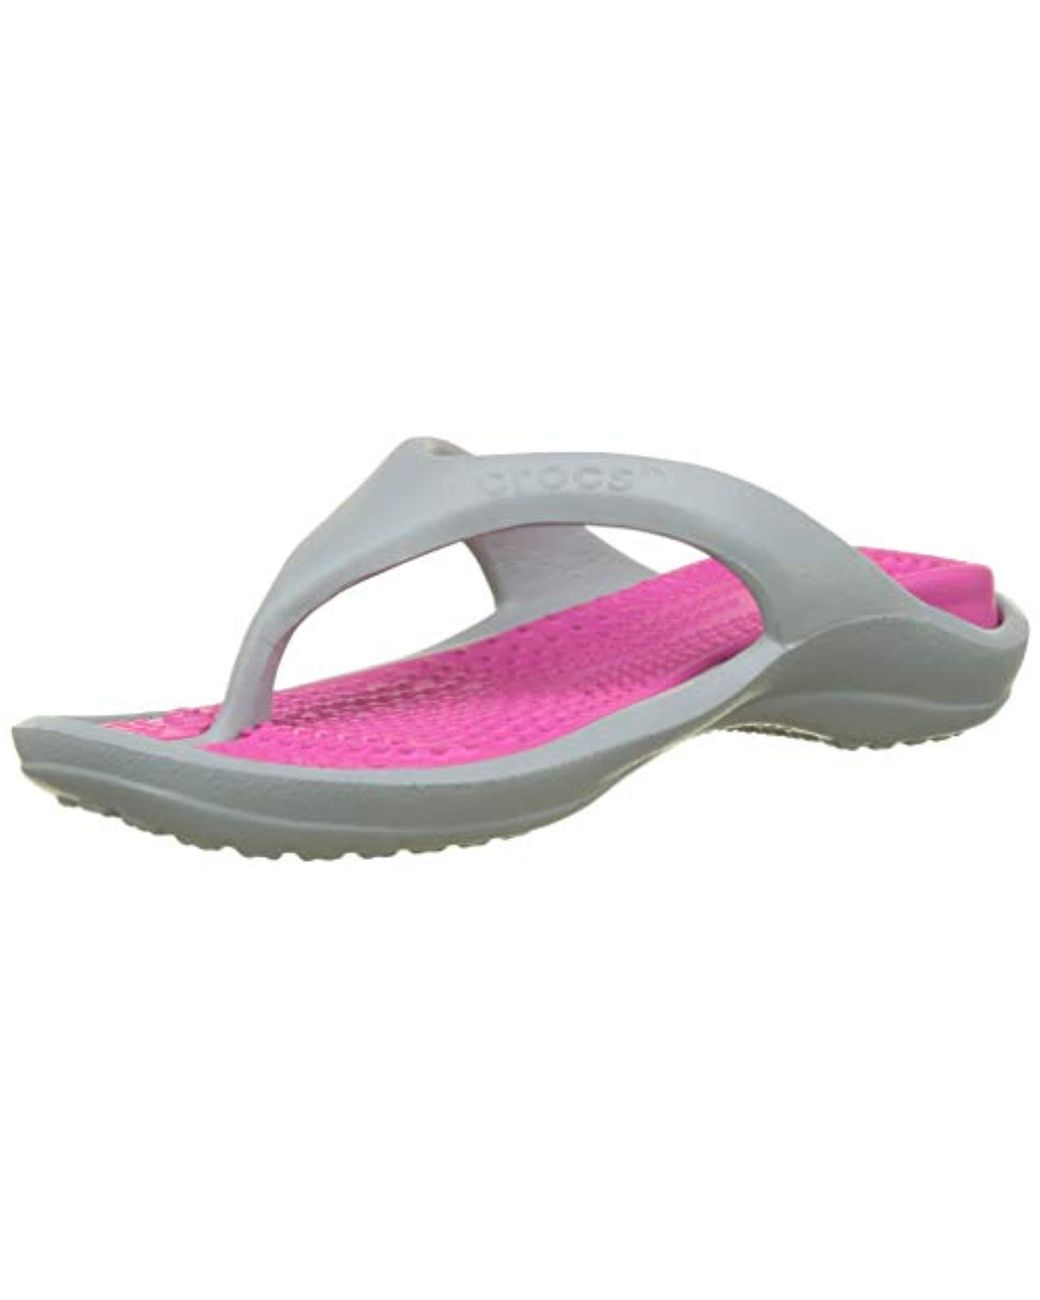 1c896621f437 Lyst - Crocs™ Unisex Adults  Athens Flip Flops in Gray